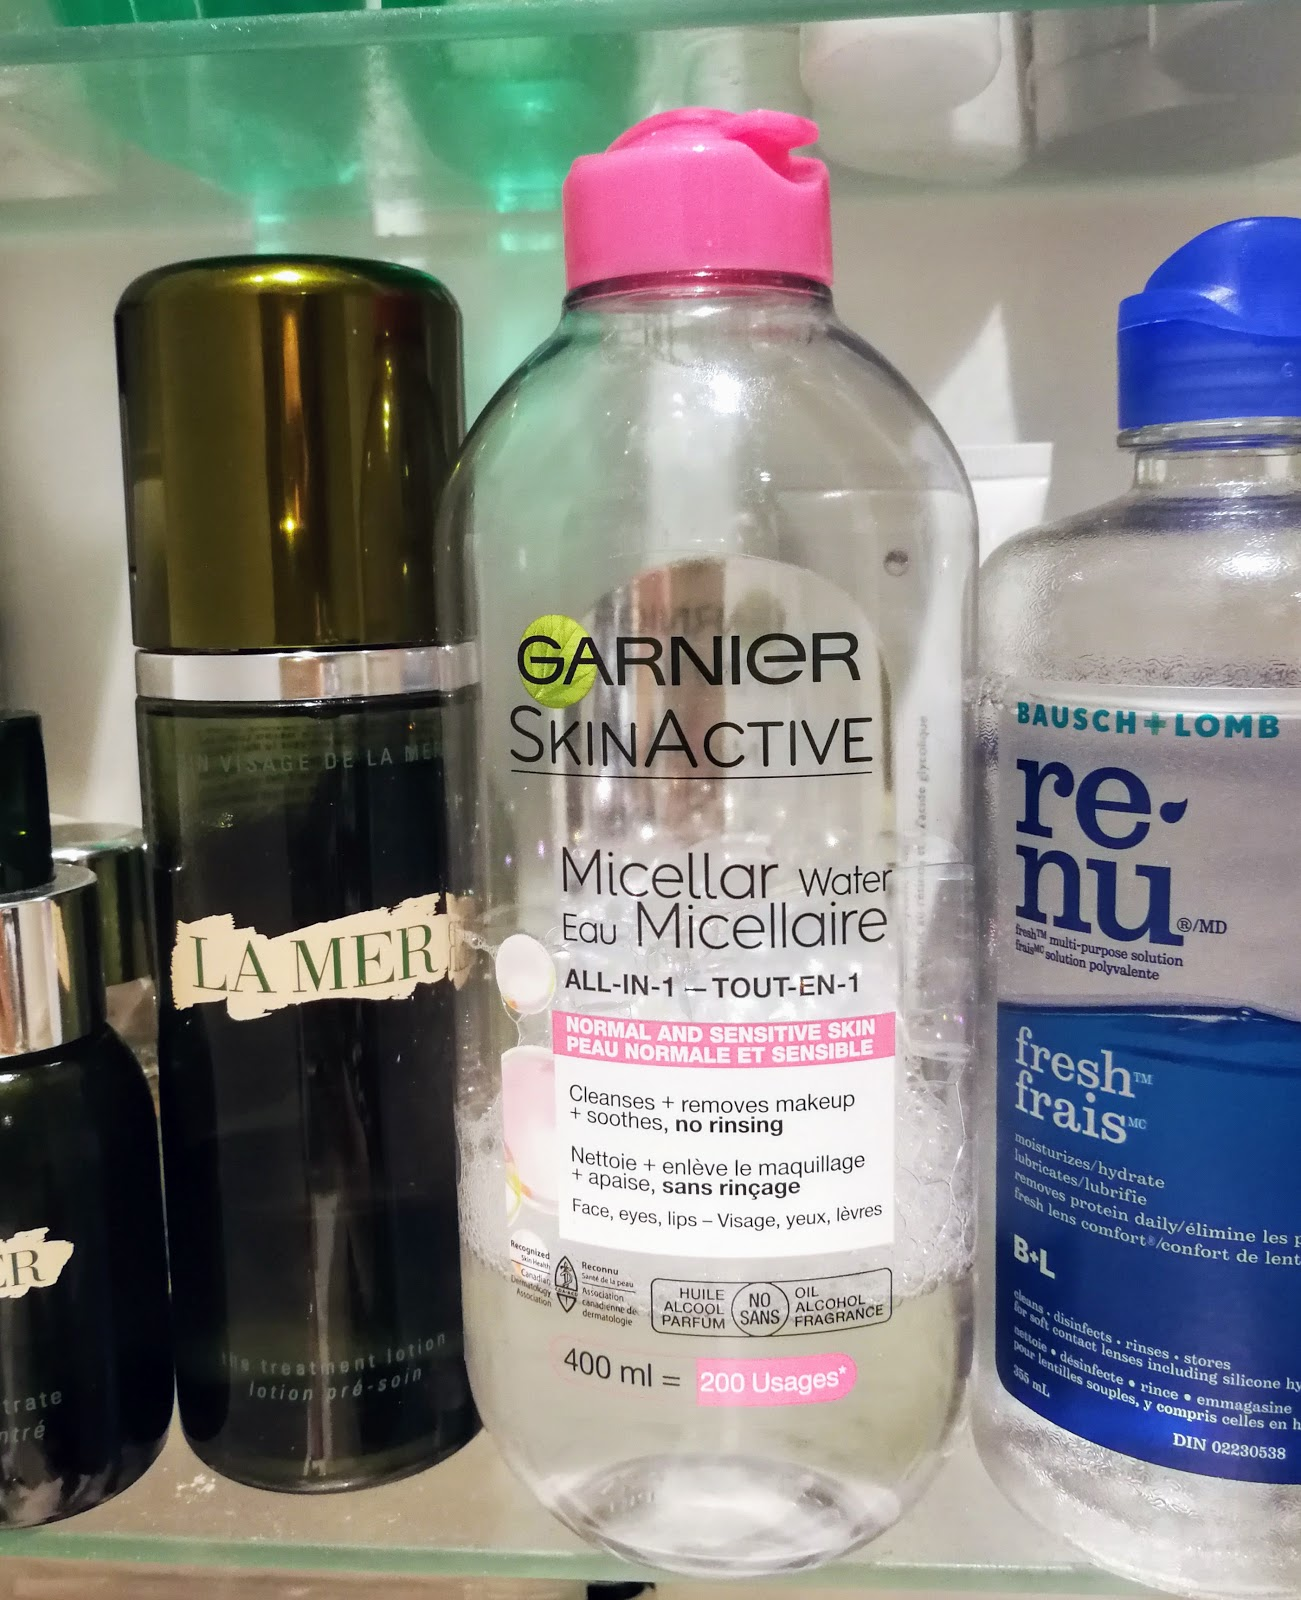 Micellar water, Garnier, La Mer, Renew Contact Solution